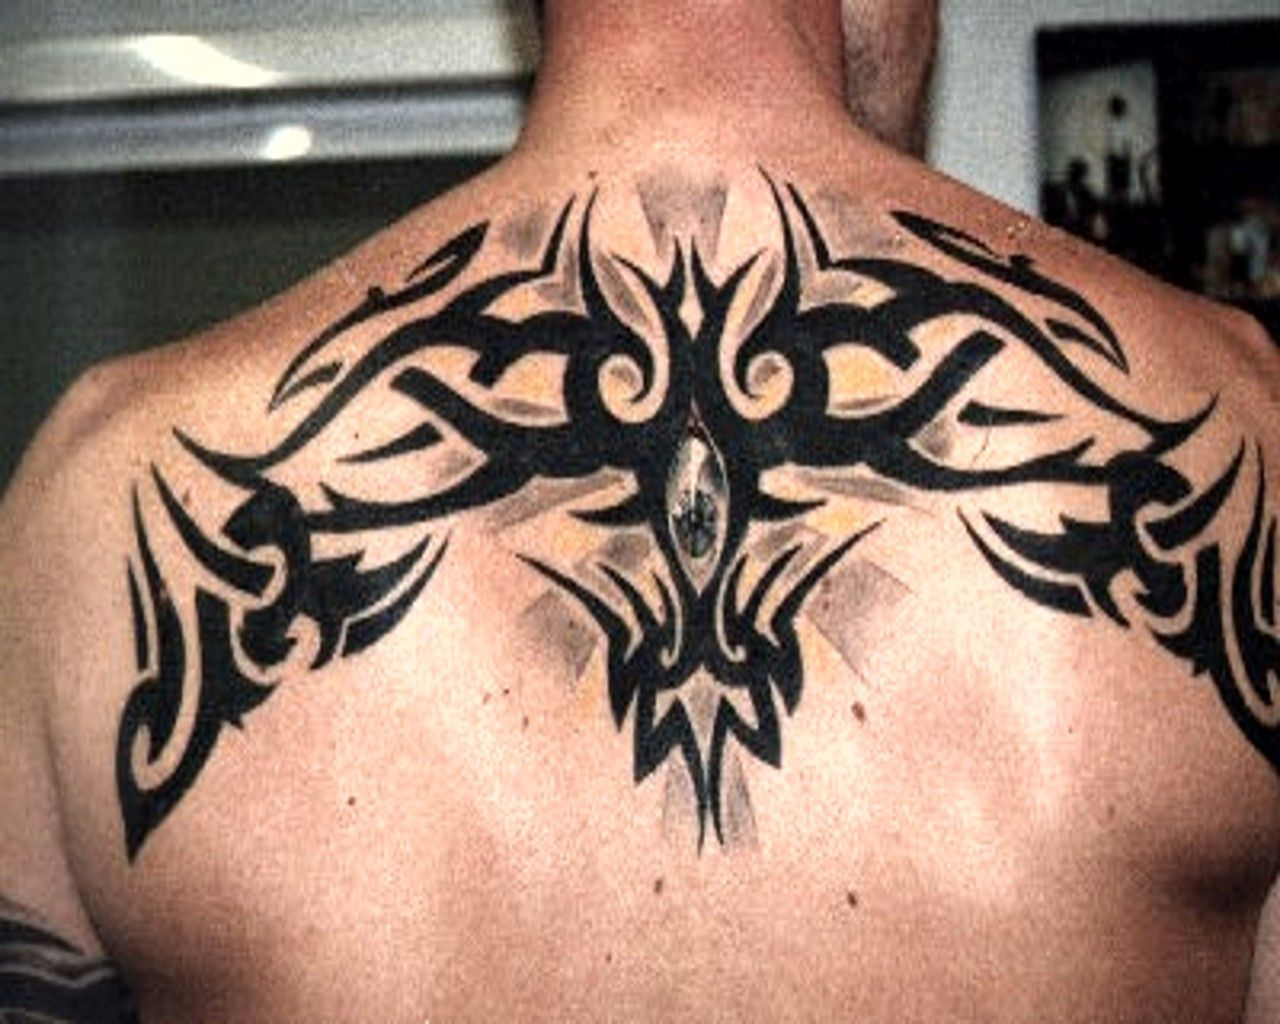 85 Best Tattoos For Men In 2020 Tribal Back Tattoos Back Tattoos For Guys Tribal Tattoos For Men